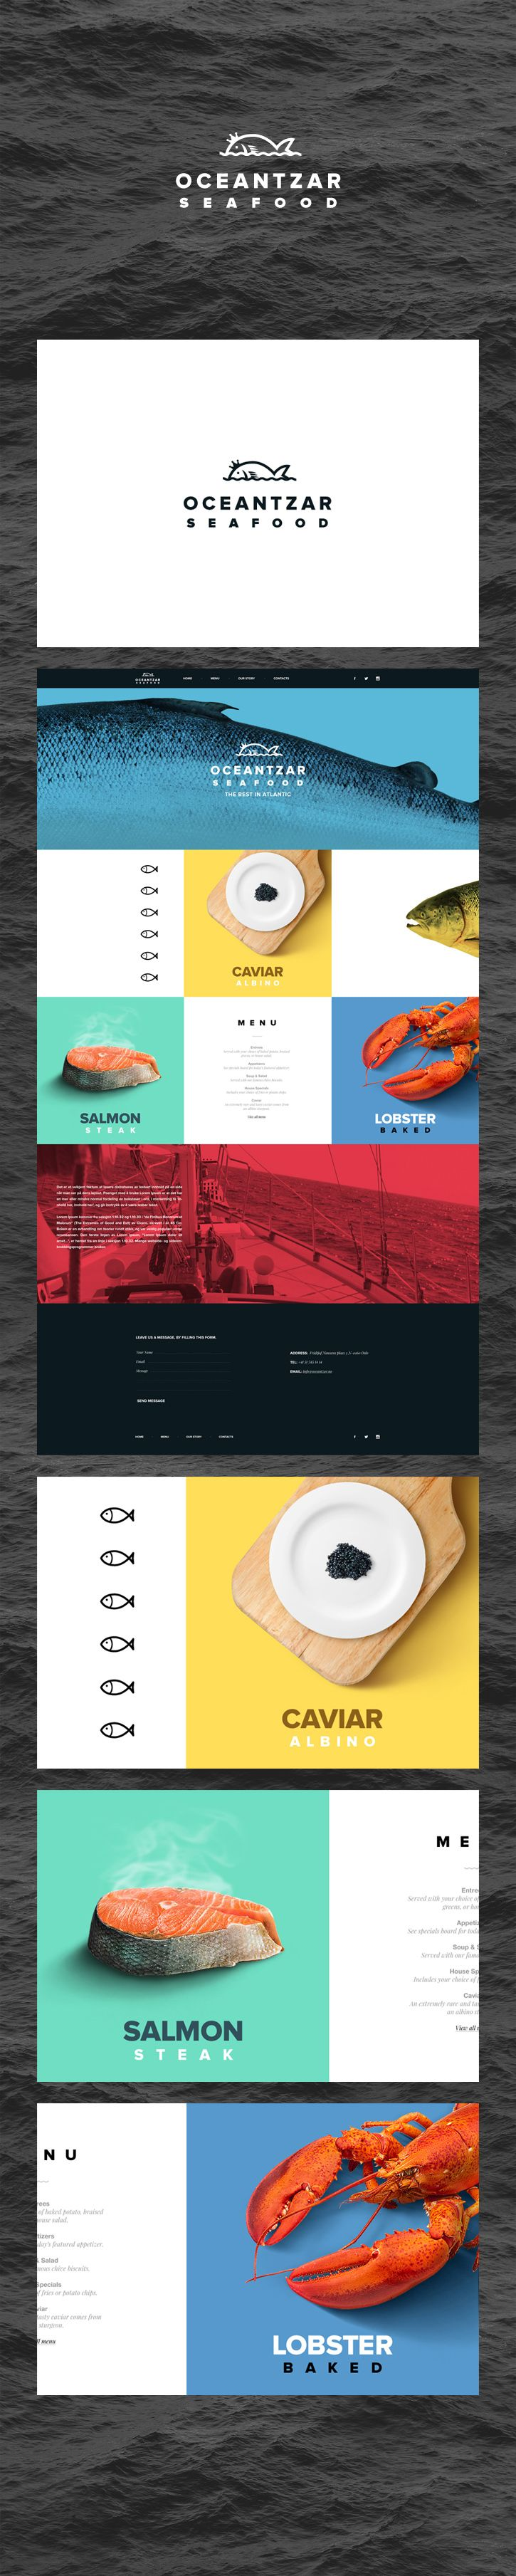 Webdesign concept for a Seafood Restaurant.